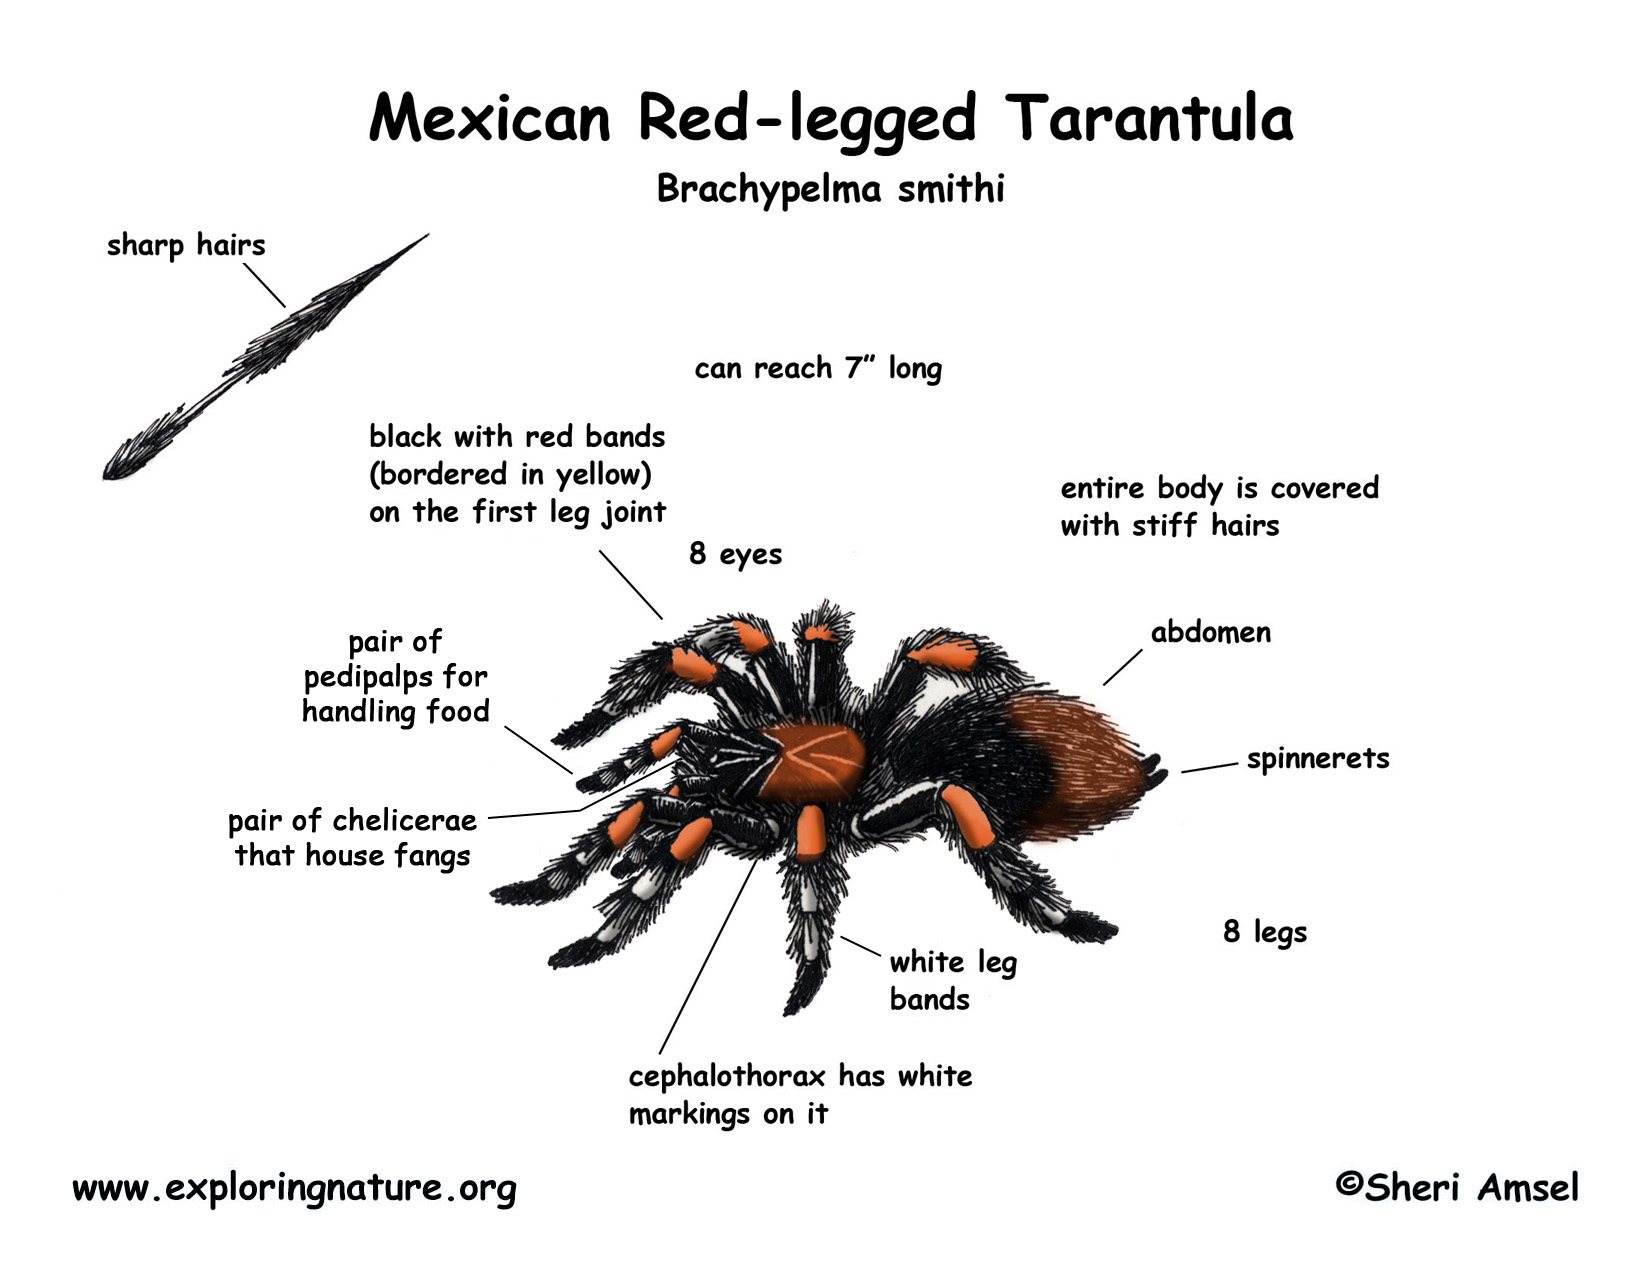 Tarantula (Mexican Red-legged)